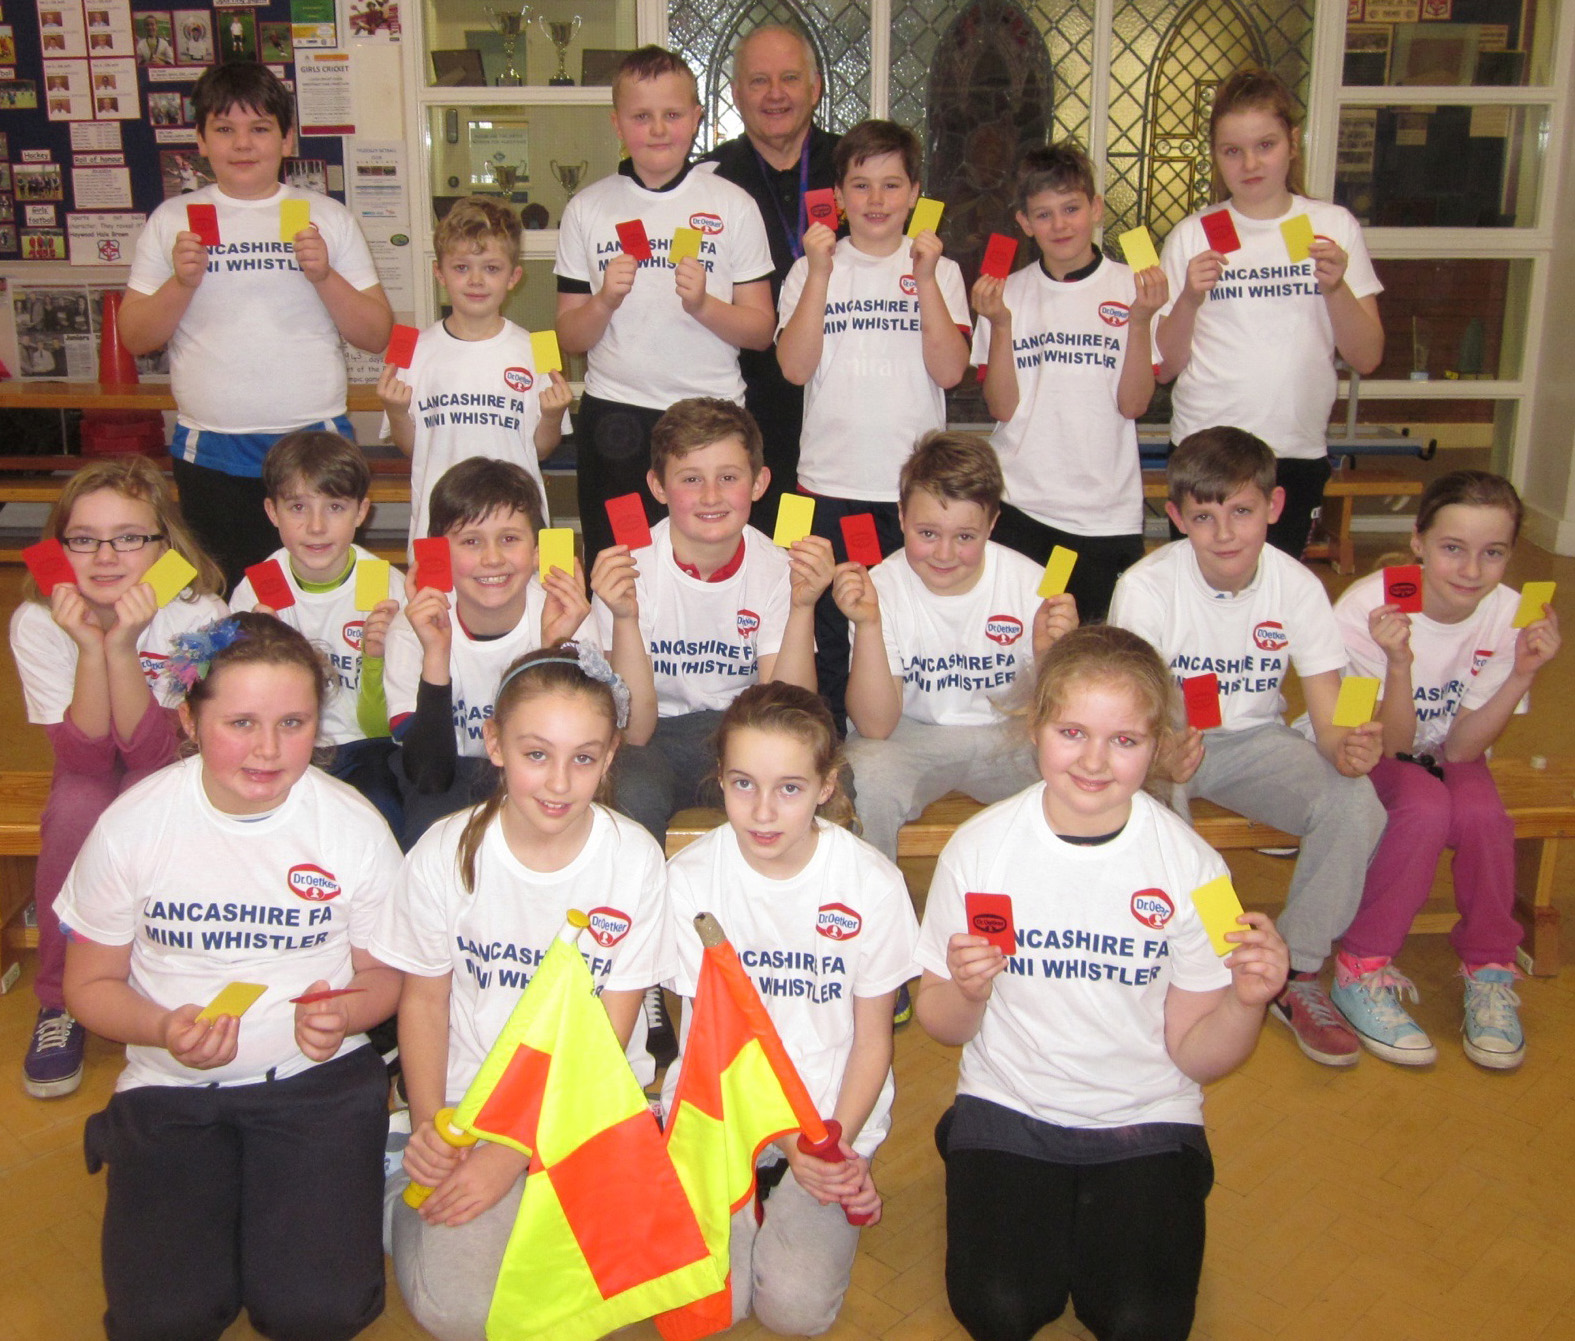 Children taught respect on mini whistlers course